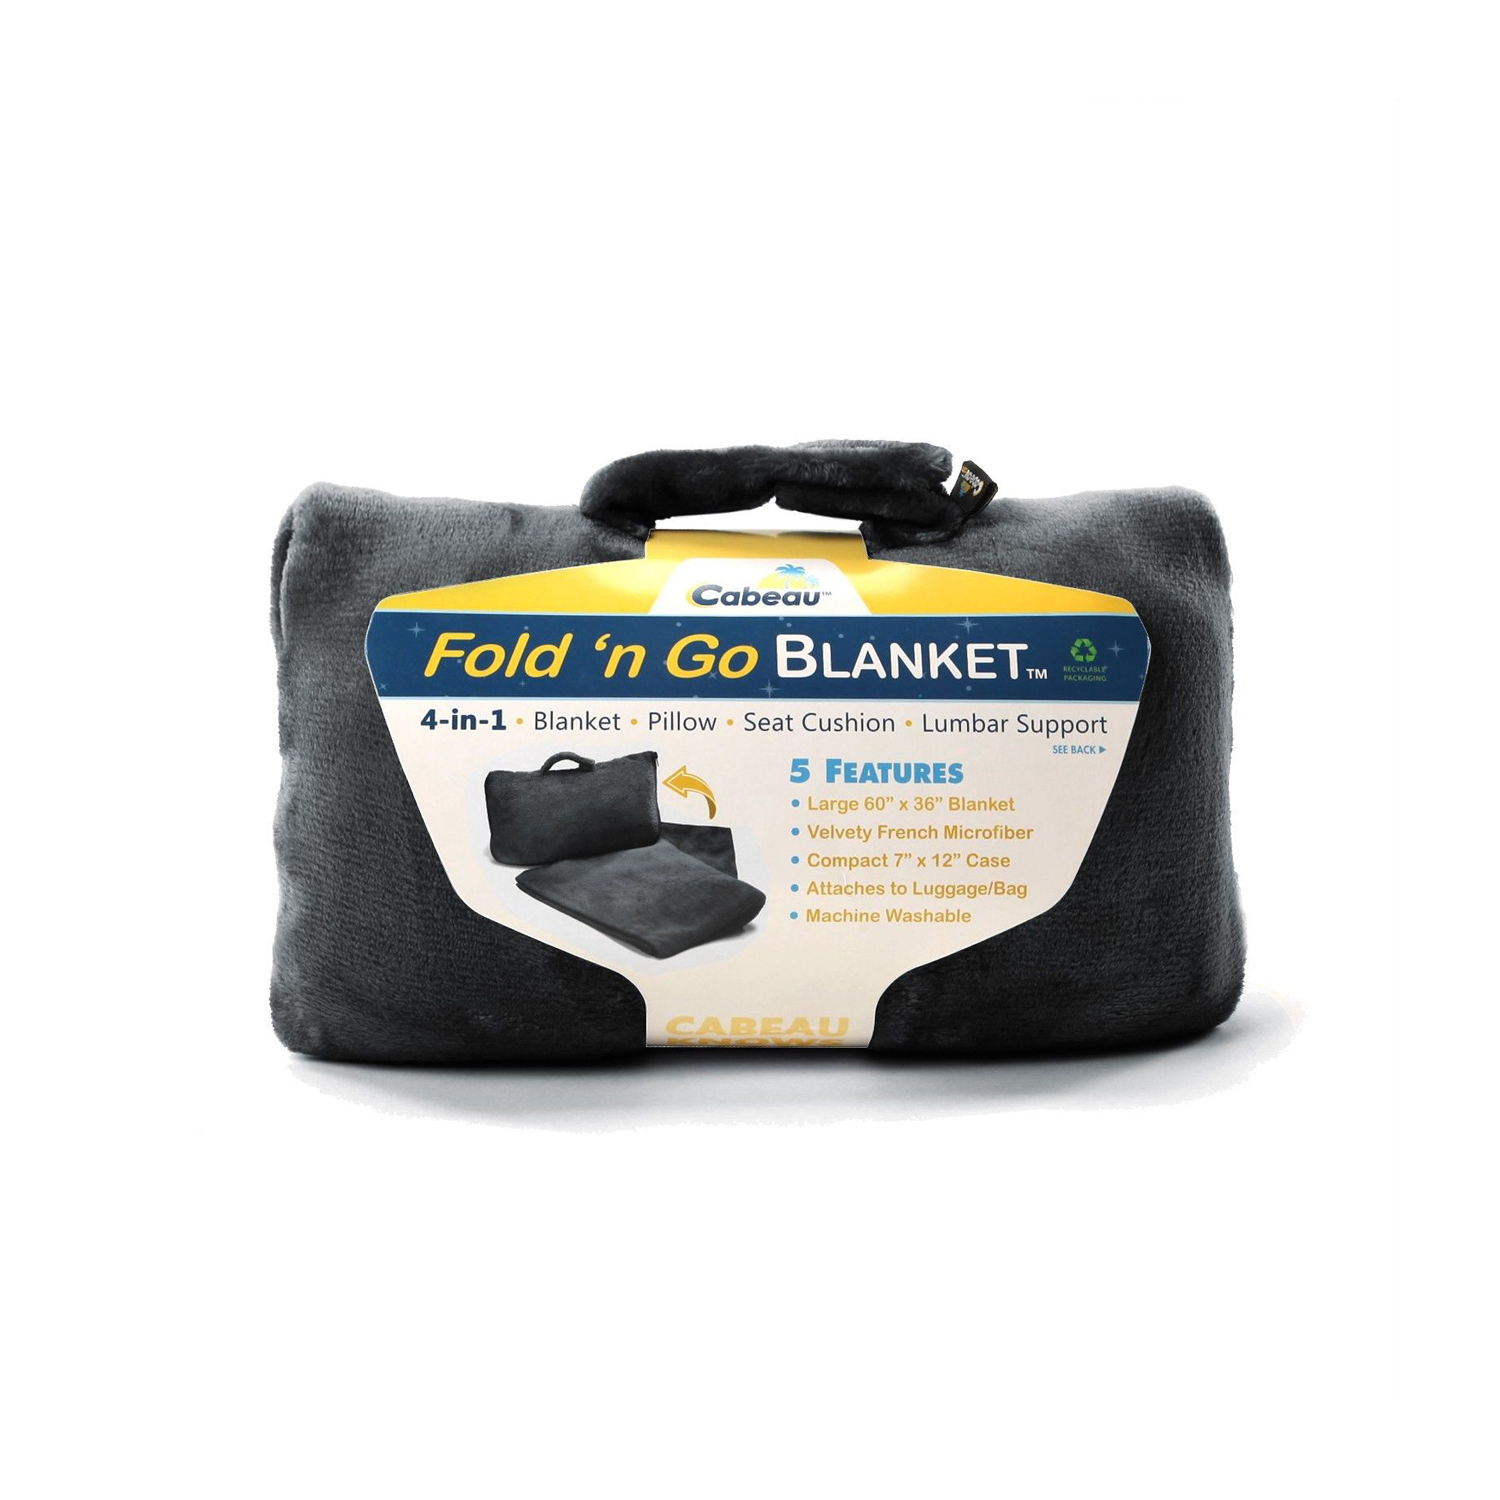 6-in-1 Travel Blanket and Pillow Bag